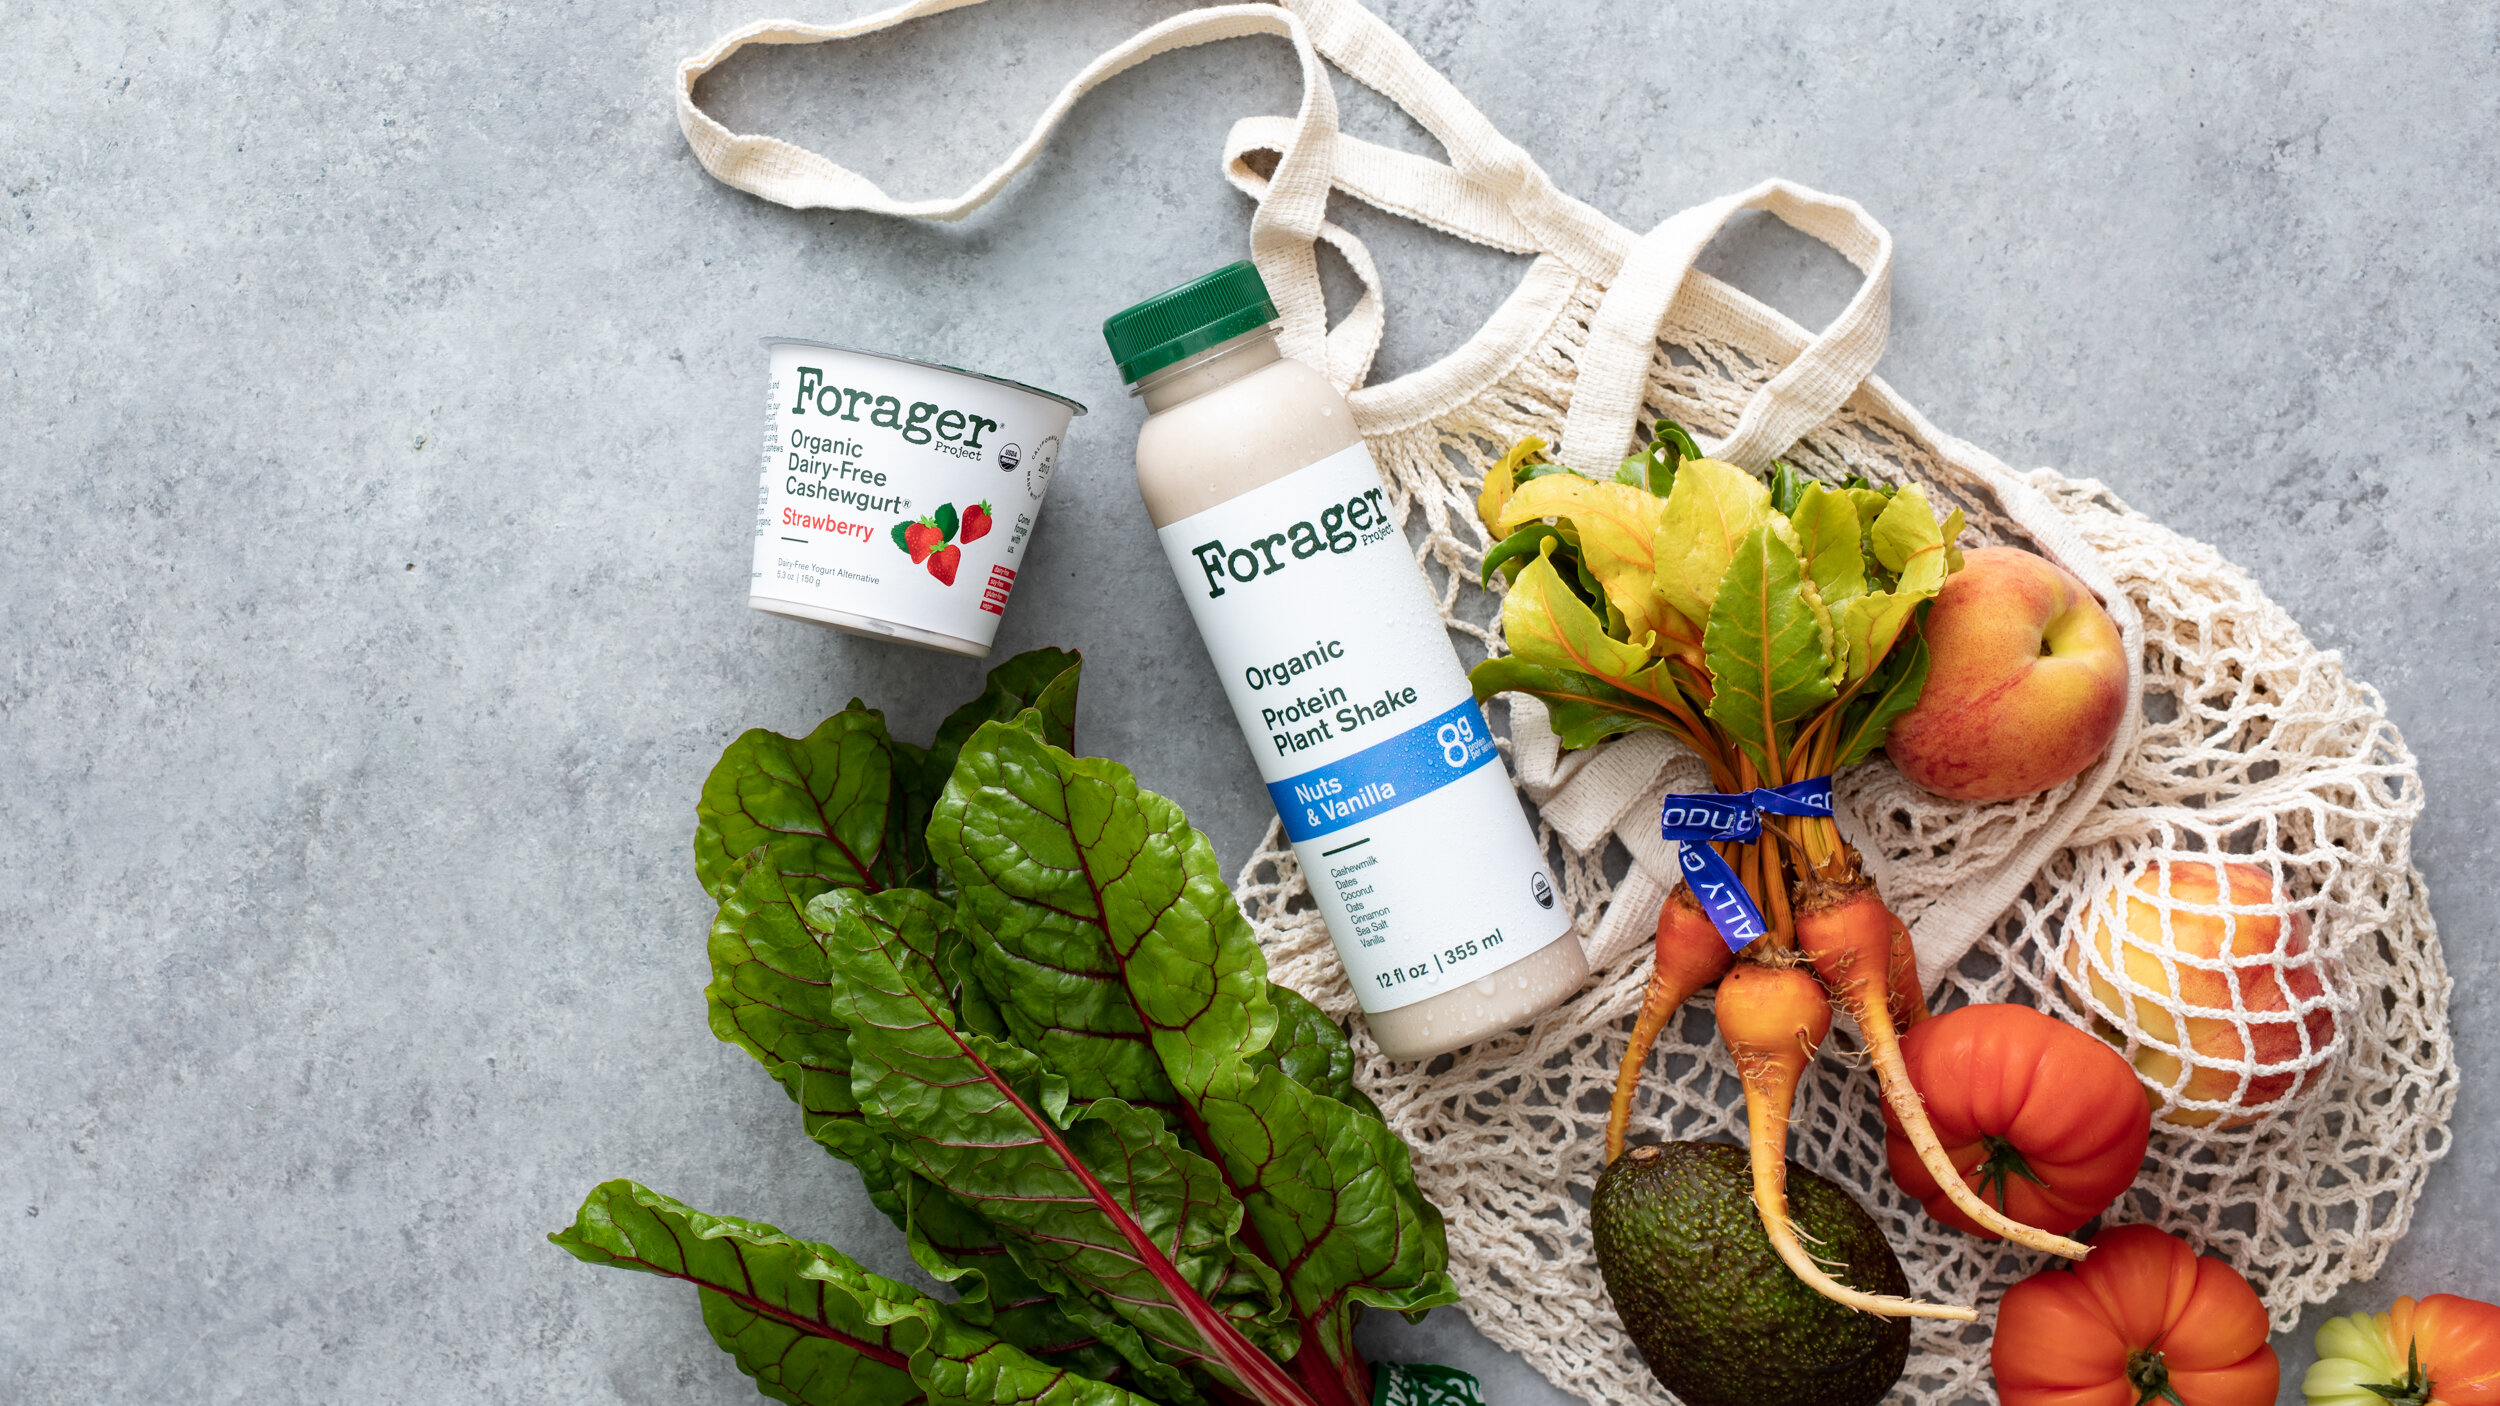 Erin-Scott-Food_photographer-Forager-Project-commerical-photography-0709.jpg